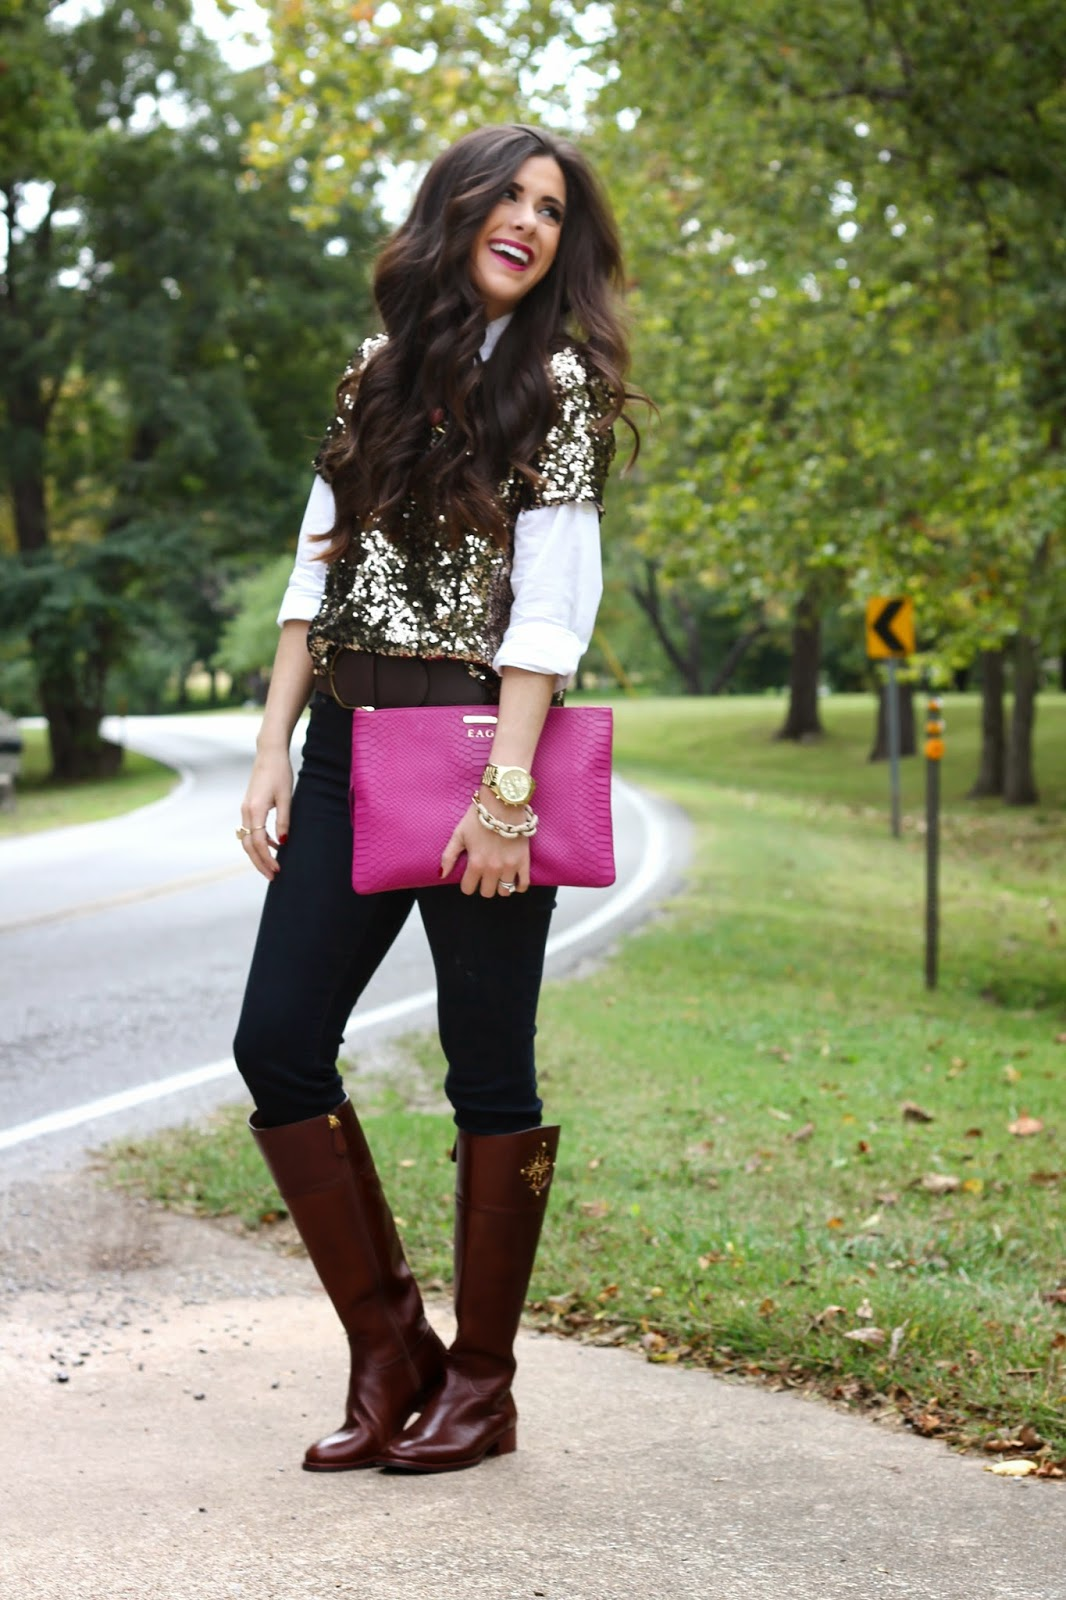 mac rebel, brunette, fashion blog, fall fashion, pinterest fall fashion, emily gemma, the sweetest thing blog, jcrew, jcrew sequin shirt, tory burch boots, kiernan boots, rebecca minkoff, plaid and sequins